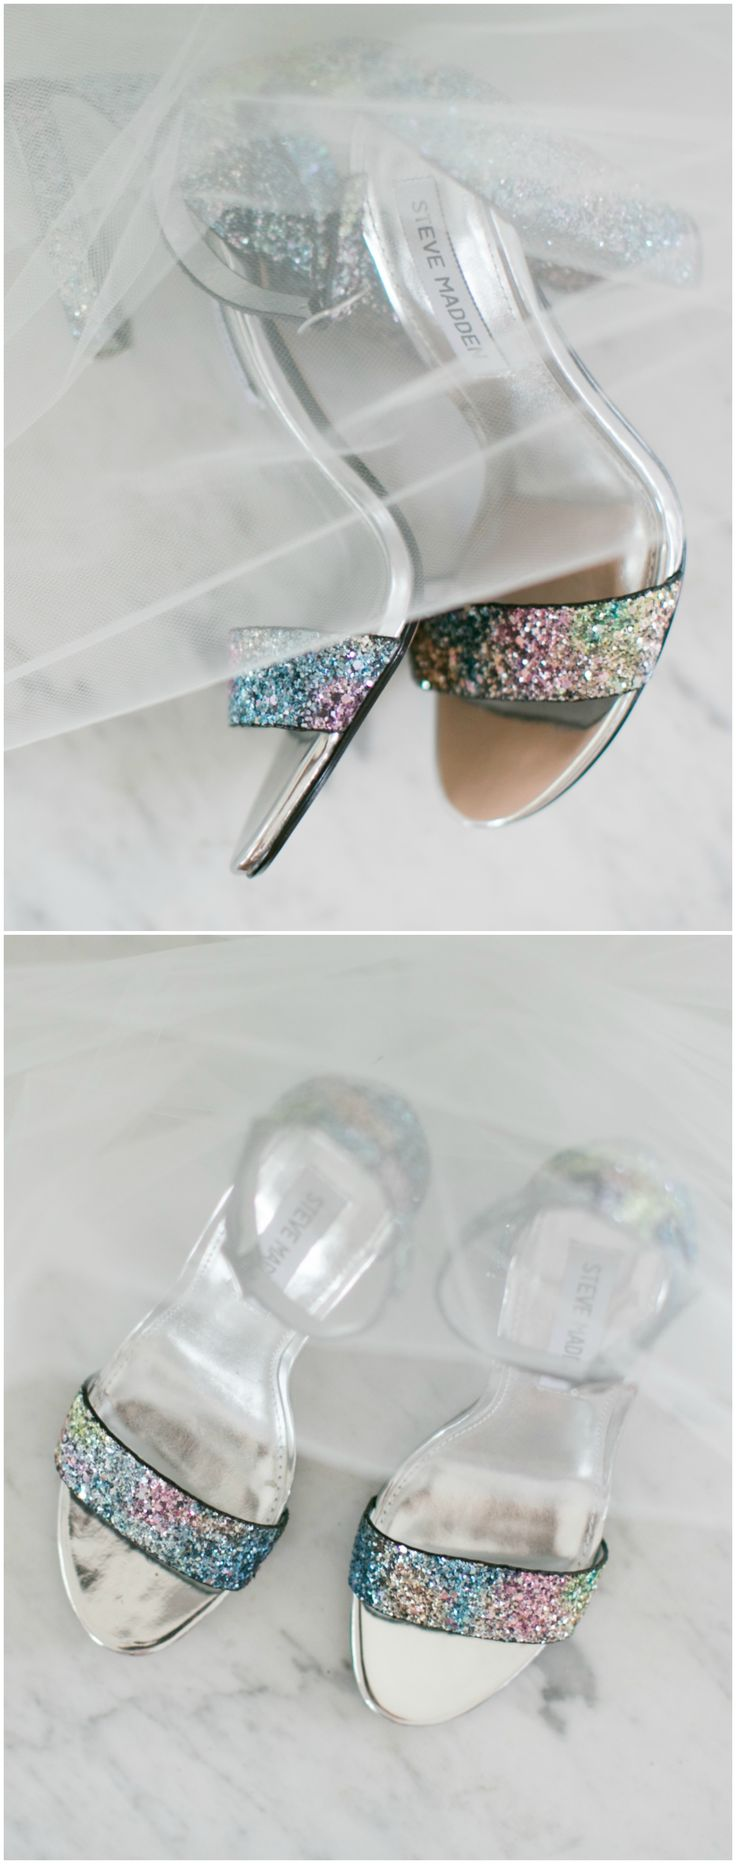 Steven Madden shoes, block heels, black and silver, rainbow glitter // Sarah Brooke Photography